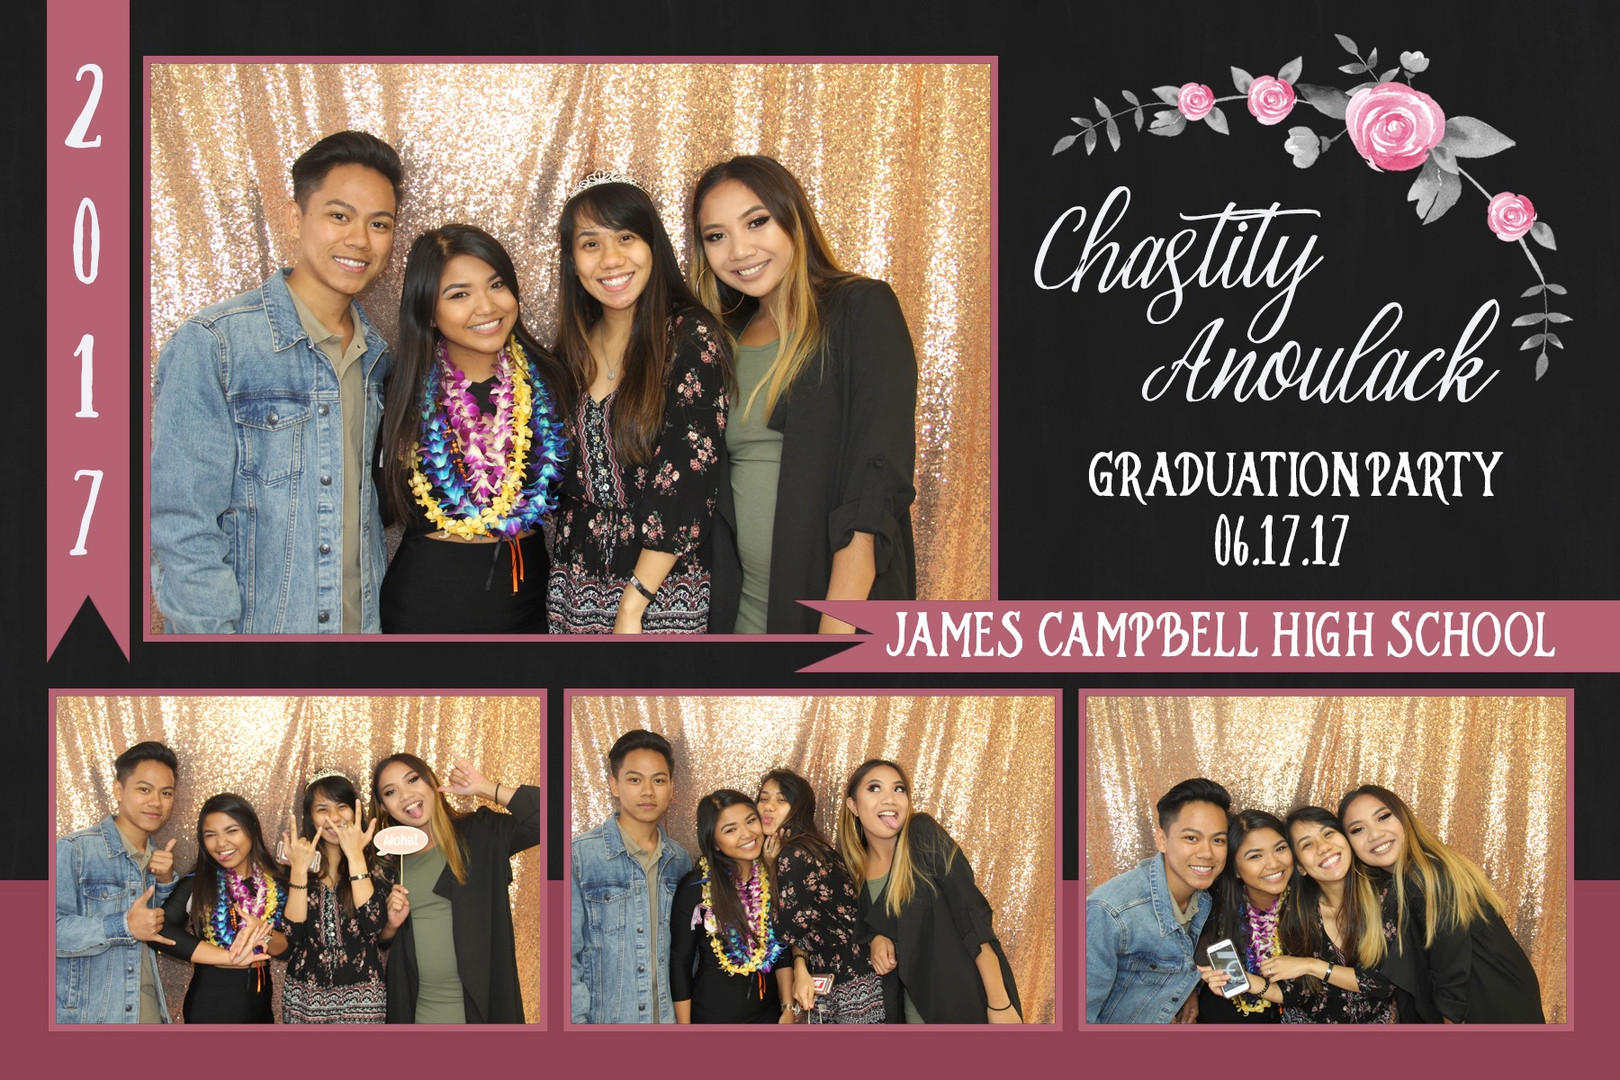 Chastity's Graduation Party.jpg